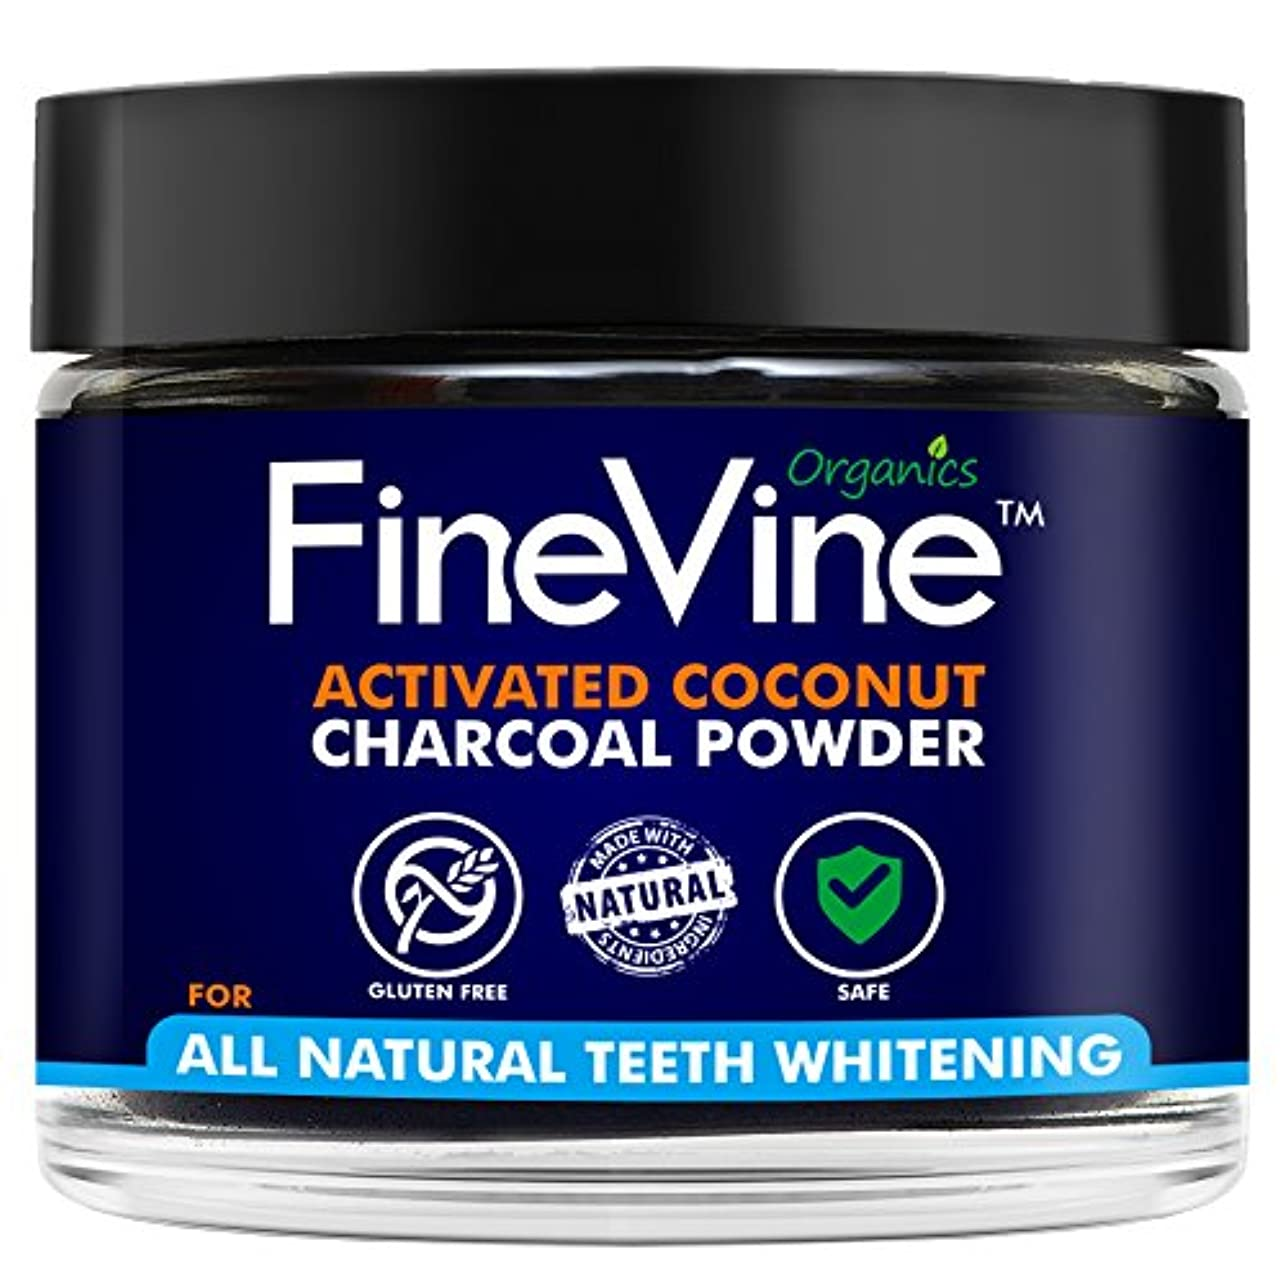 Activated Coconuts Charcoal Powder Made in USA Tooth Whitener Product (Peppermint)